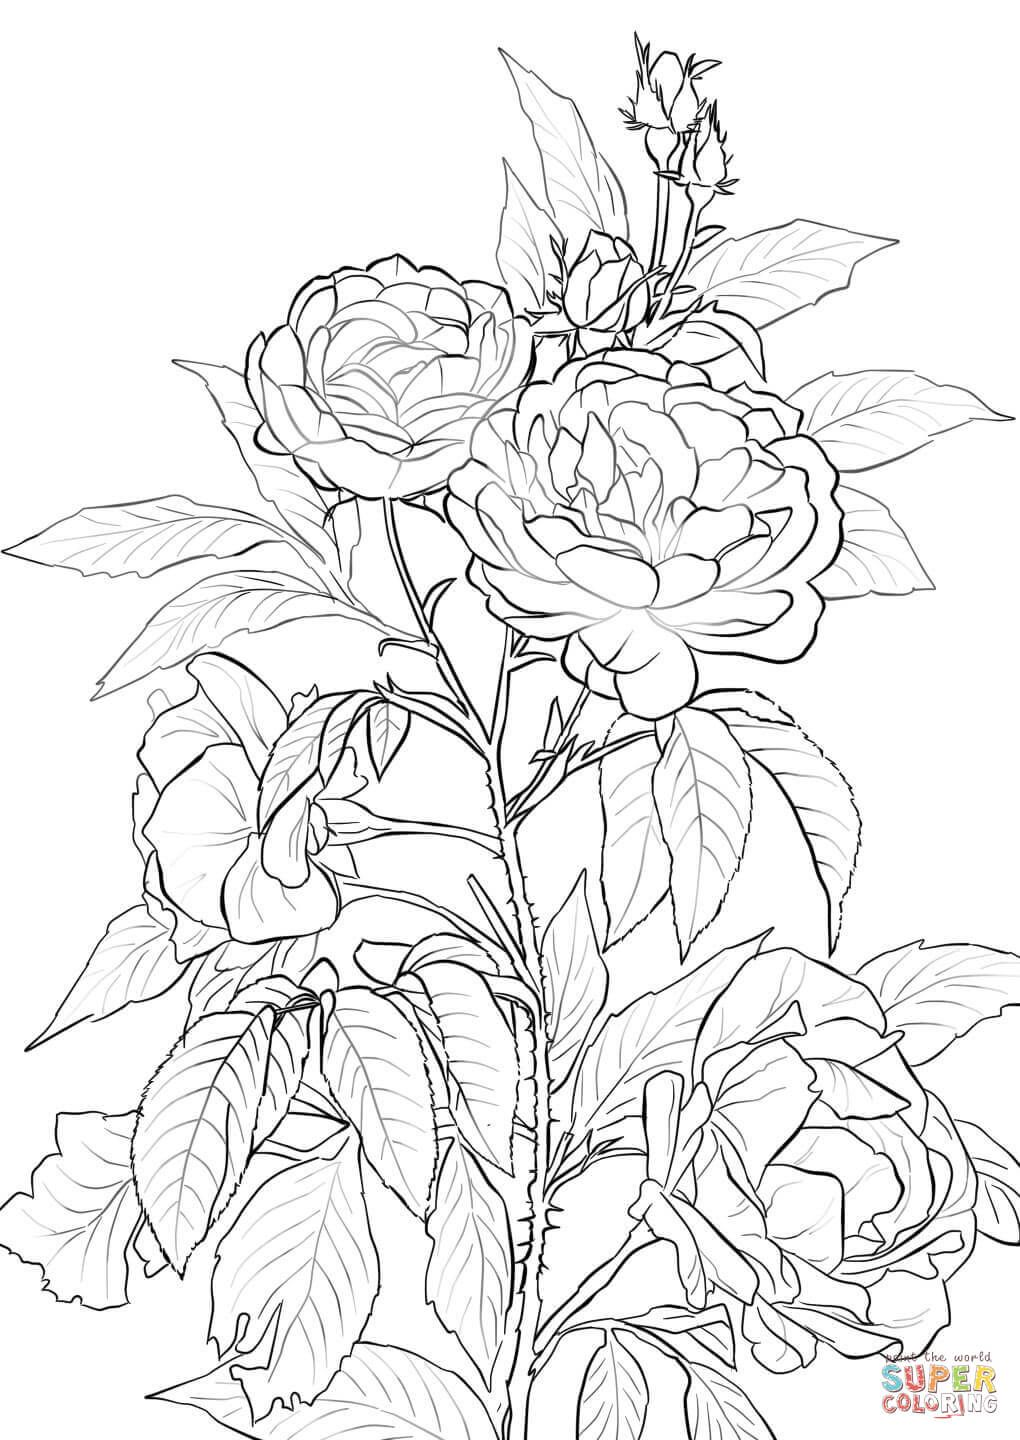 Rose Coloring Pages Printable | Coloring pages | Pinterest | Craft